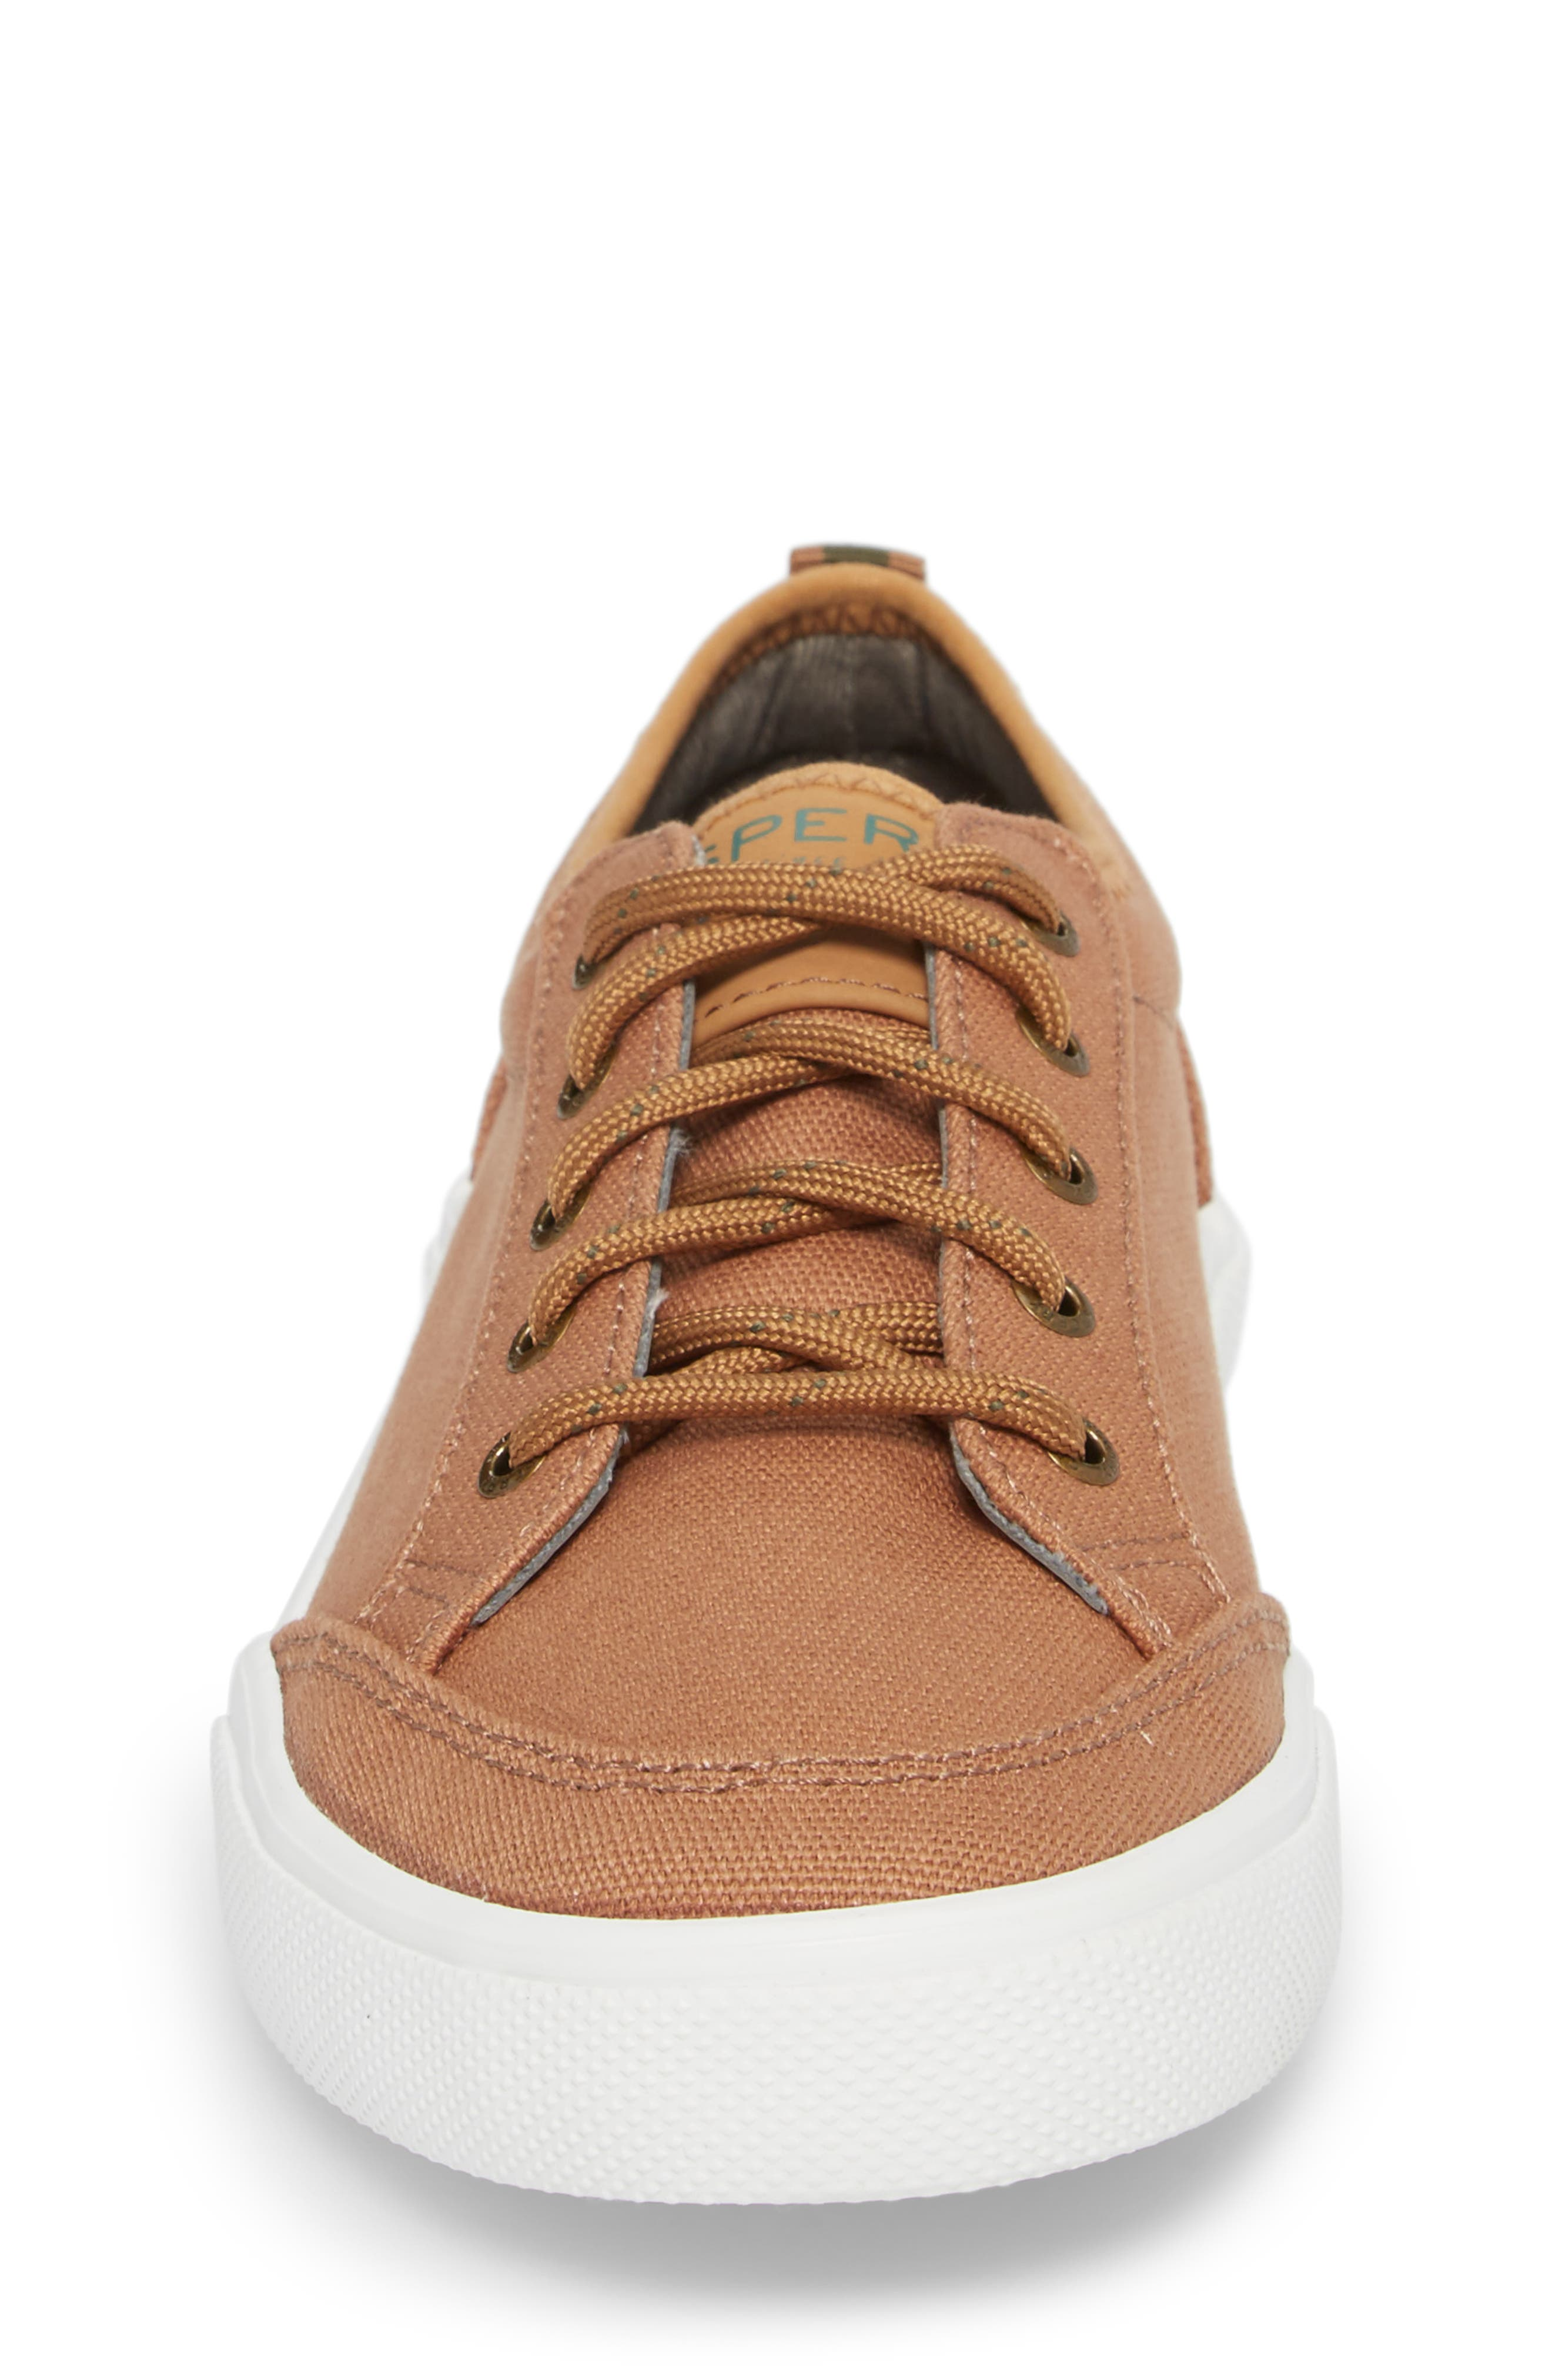 Sperry Deckfin Sneaker,                             Alternate thumbnail 4, color,                             200